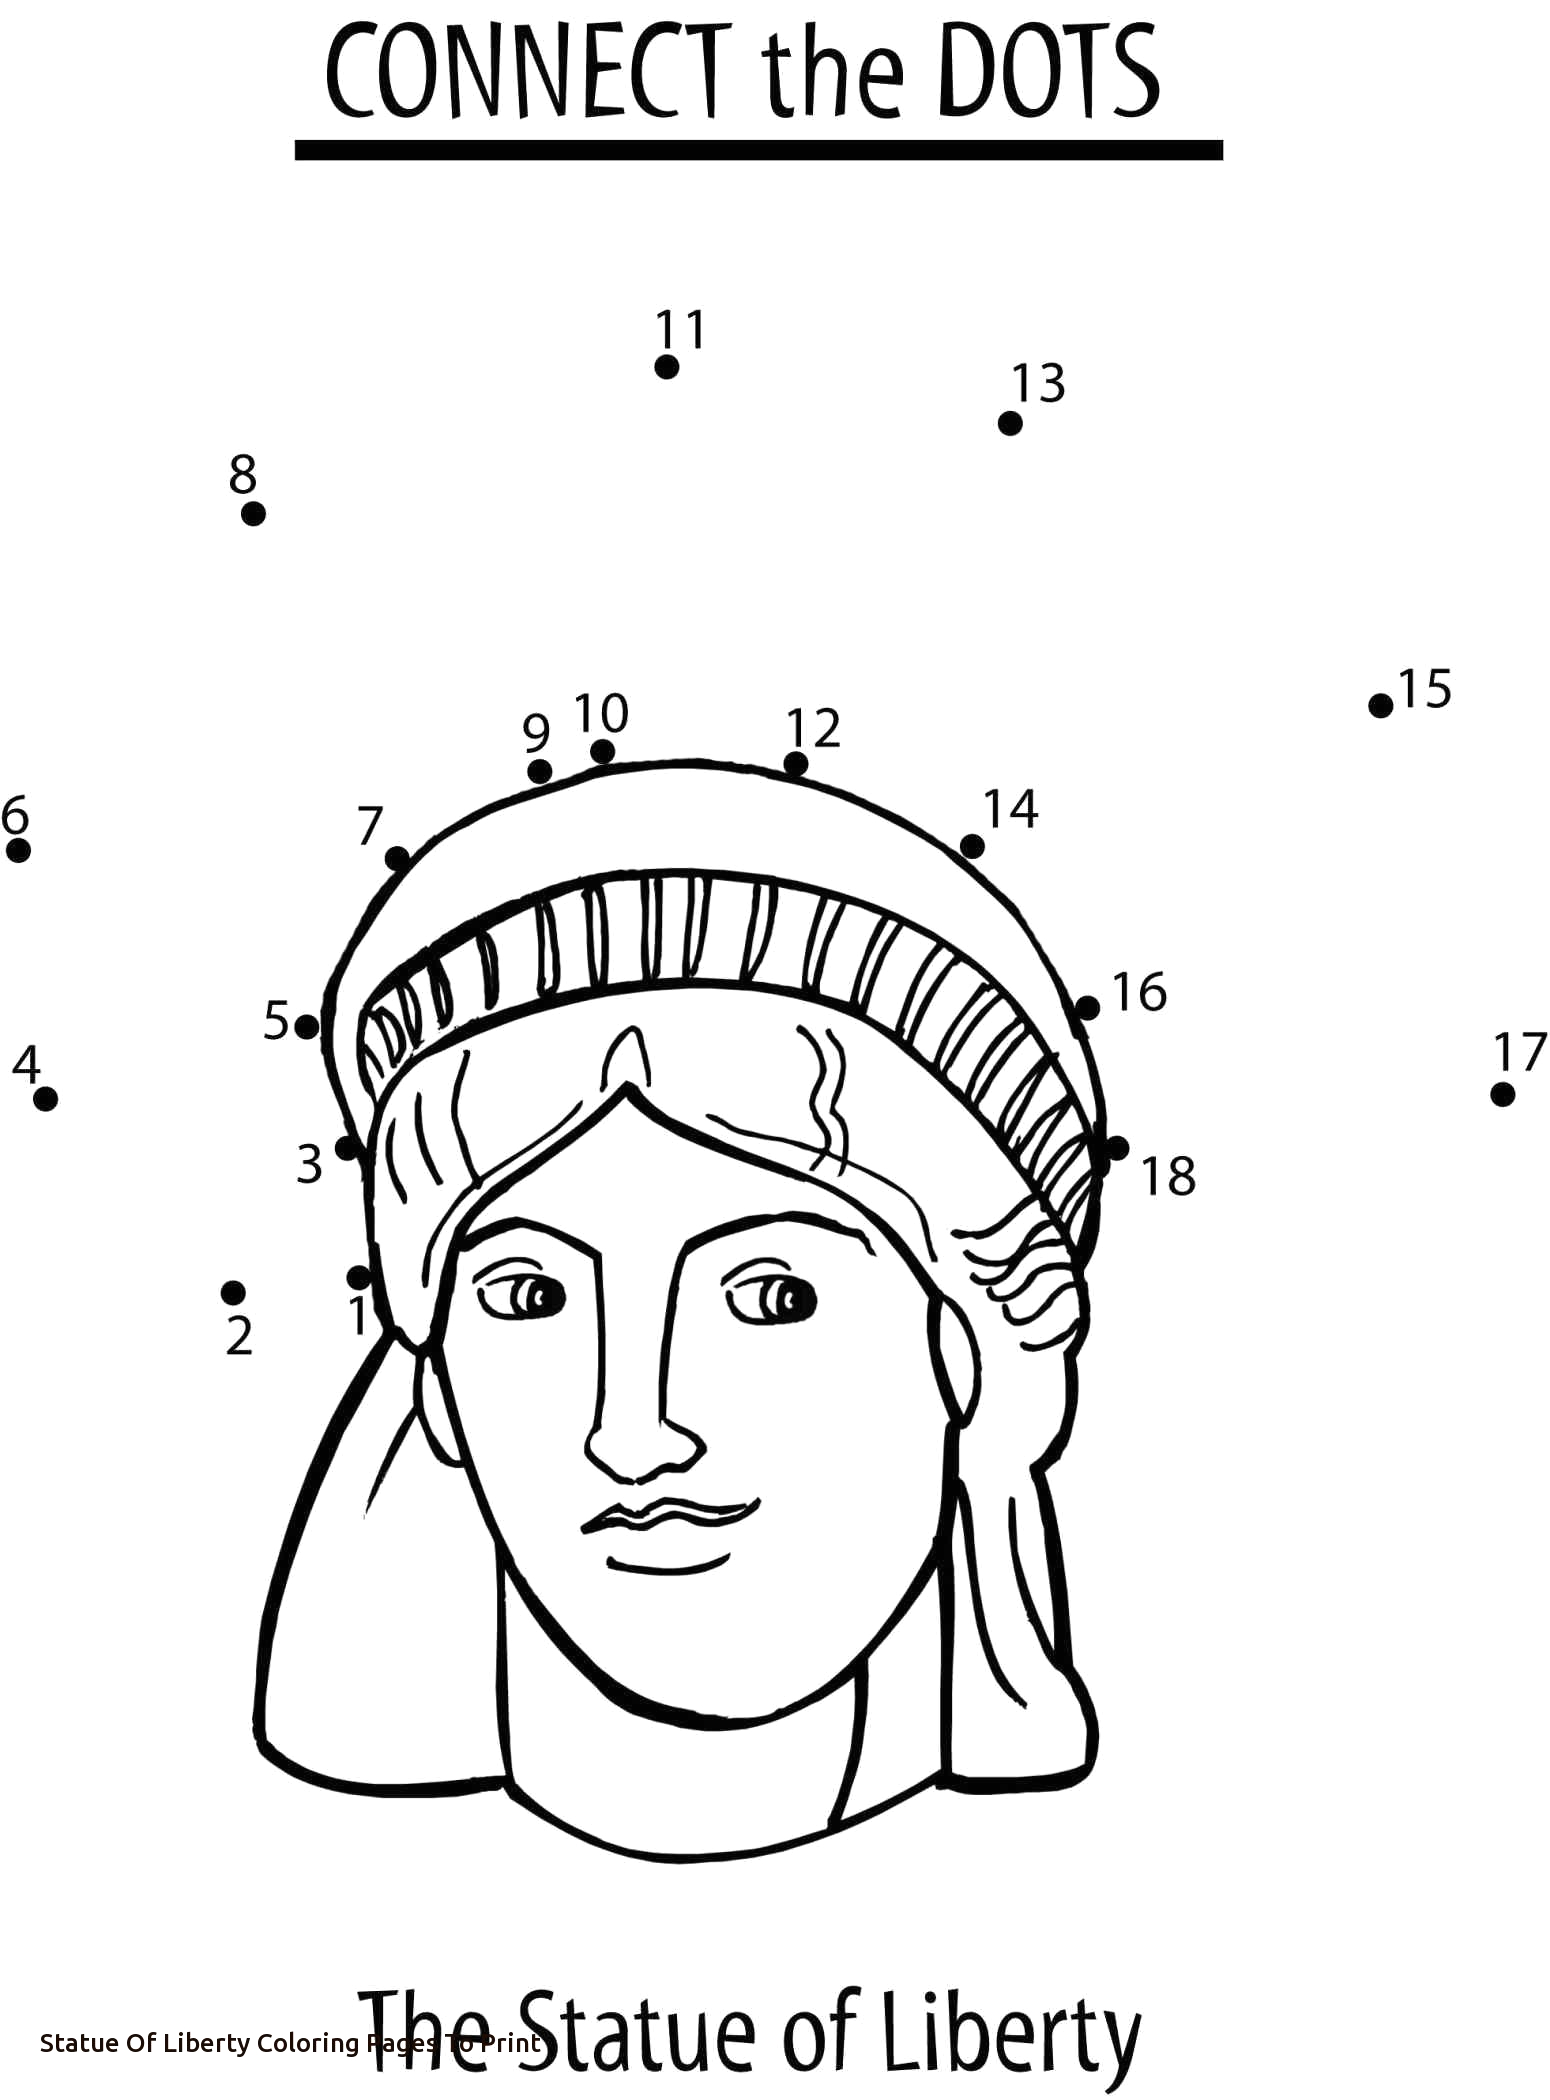 Statue Of Liberty Coloring Pages for Kindergarten Statue Liberty Drawing for Kids at Getdrawings